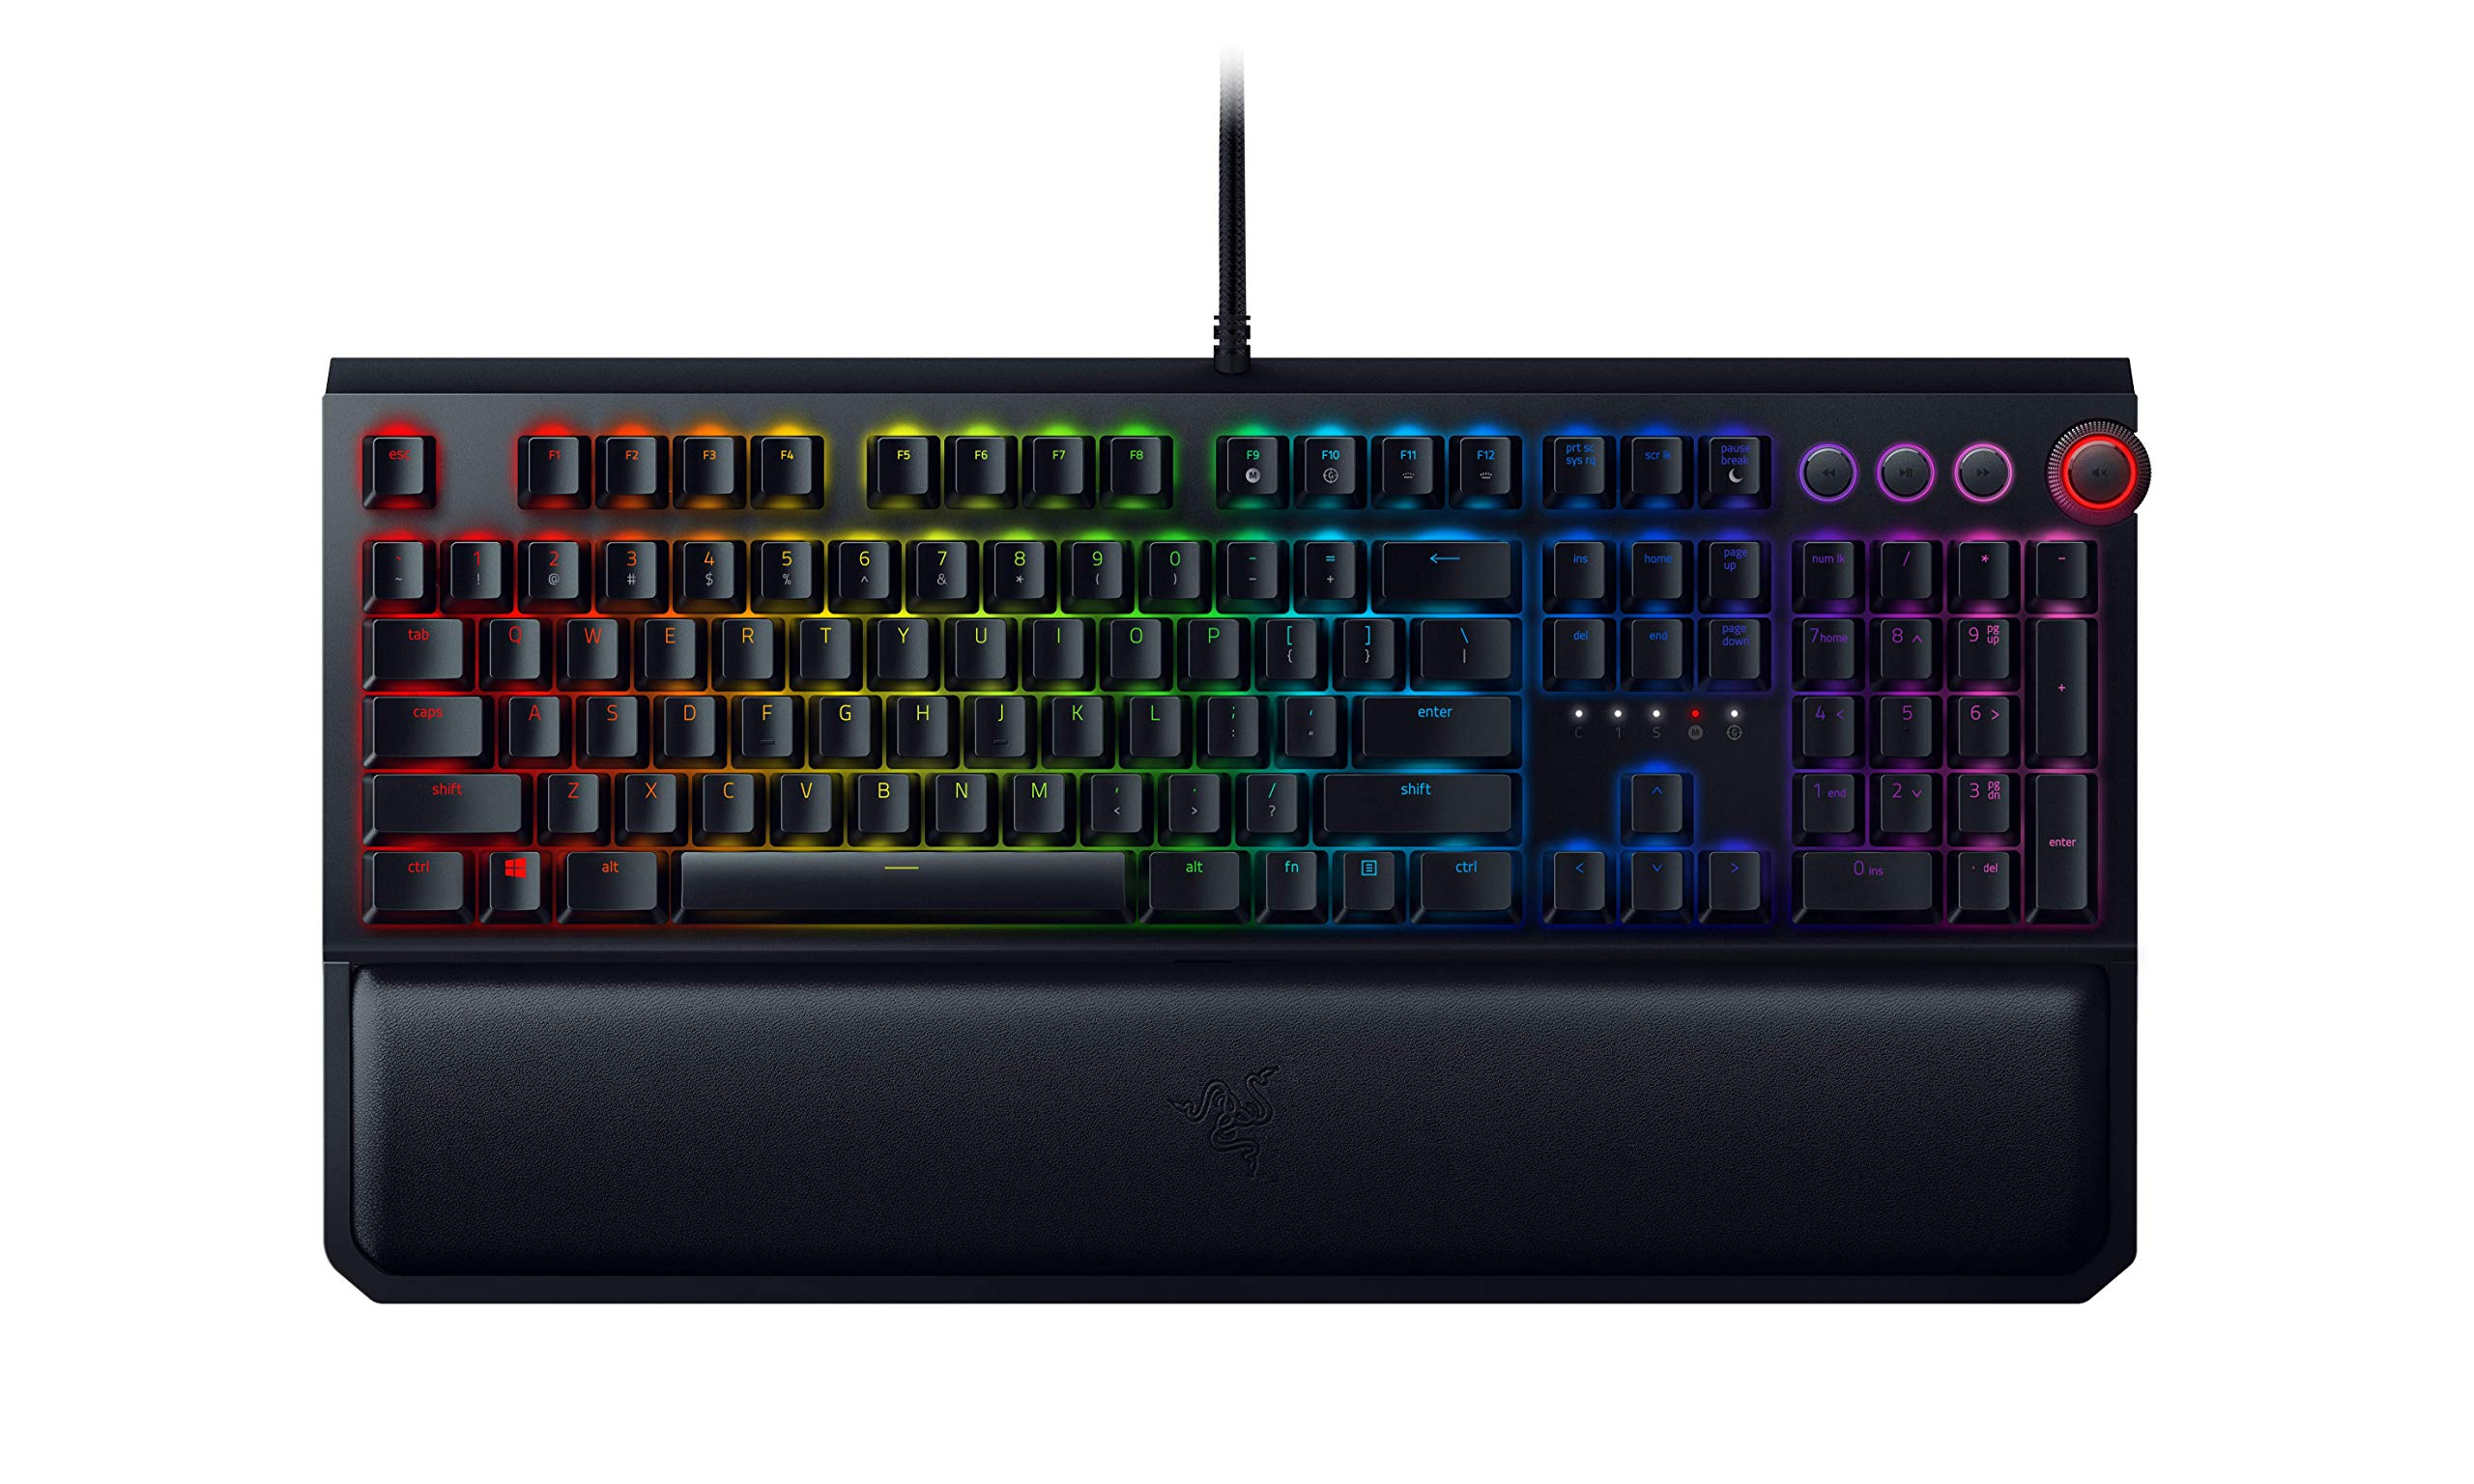 Teclado Mecanico Razer BlackWidow Elite : Yellow Switches Li